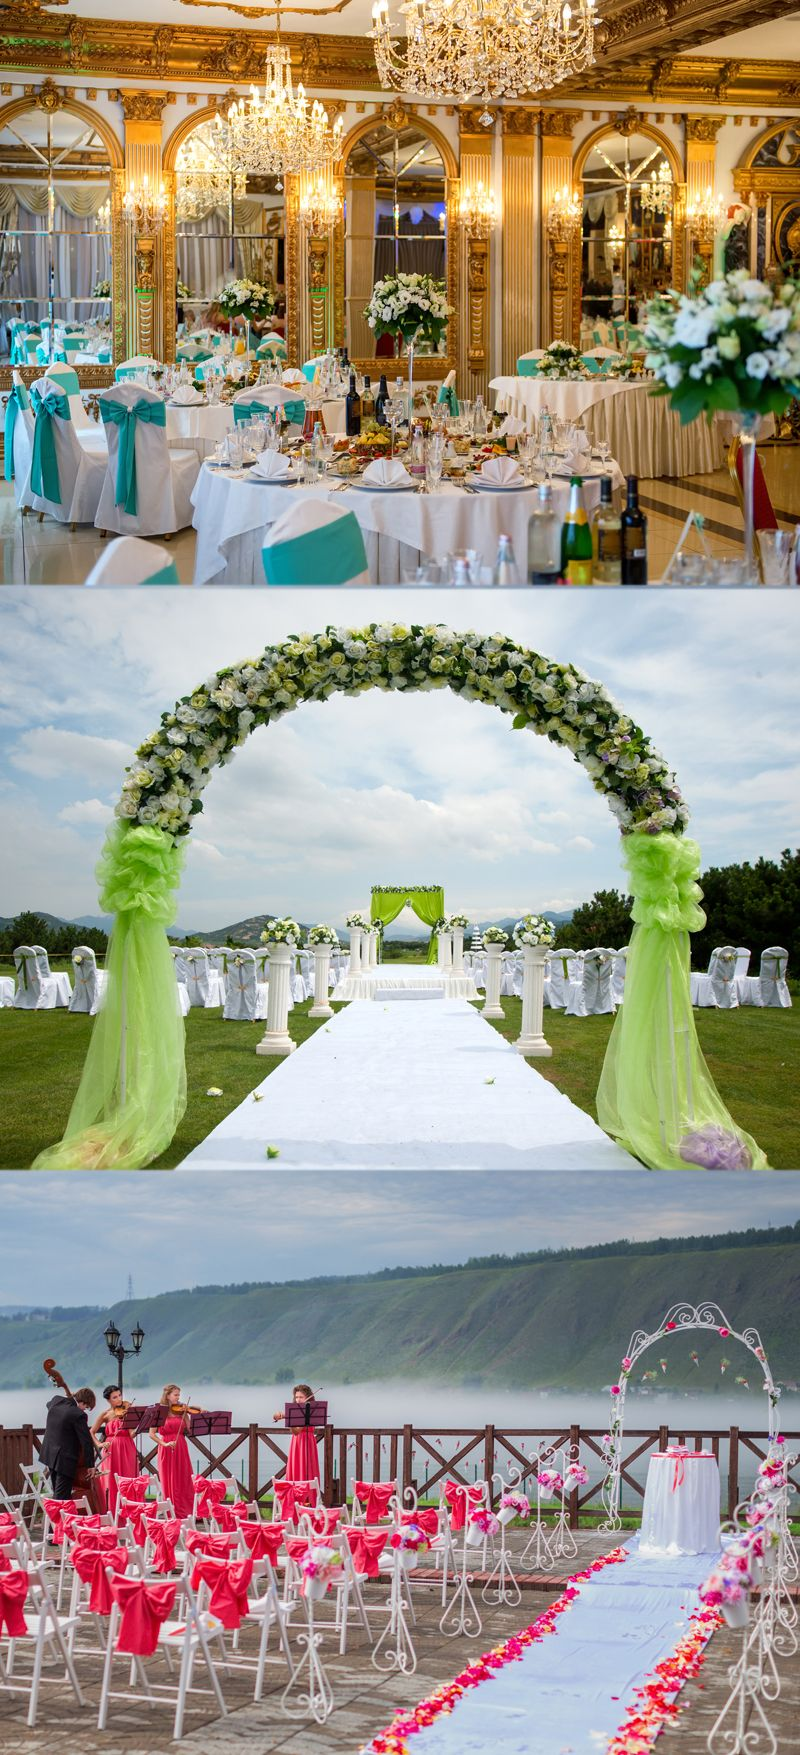 What Things To Keep In Mind Before Booking A Wedding Venue For